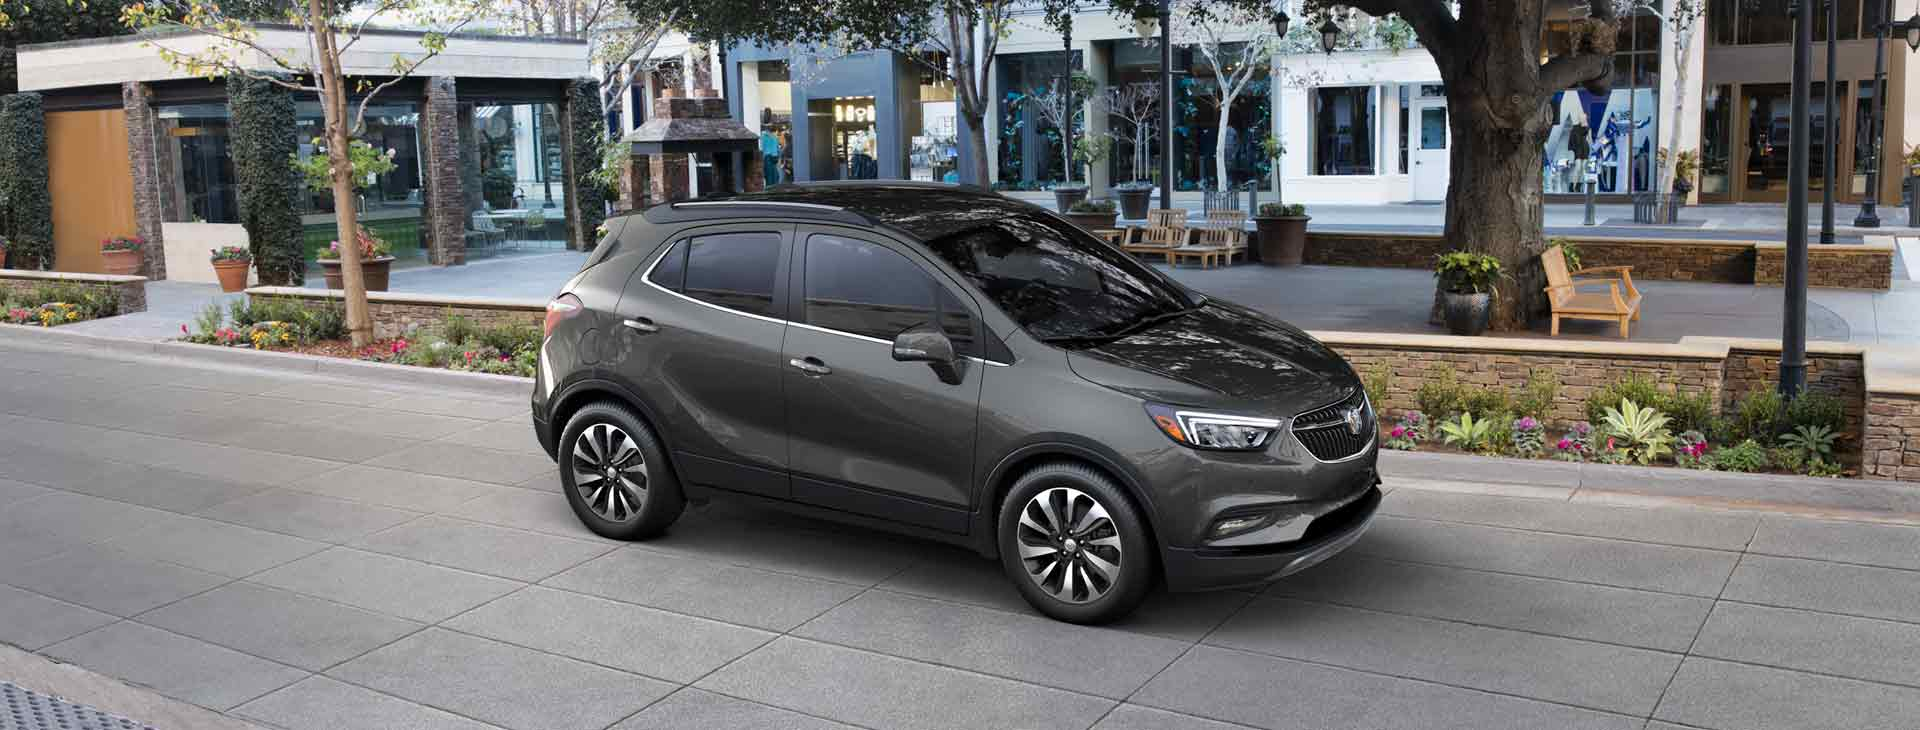 buick encore black. review the 2017 buick encore is perfect car for one purpose gafollowers black u